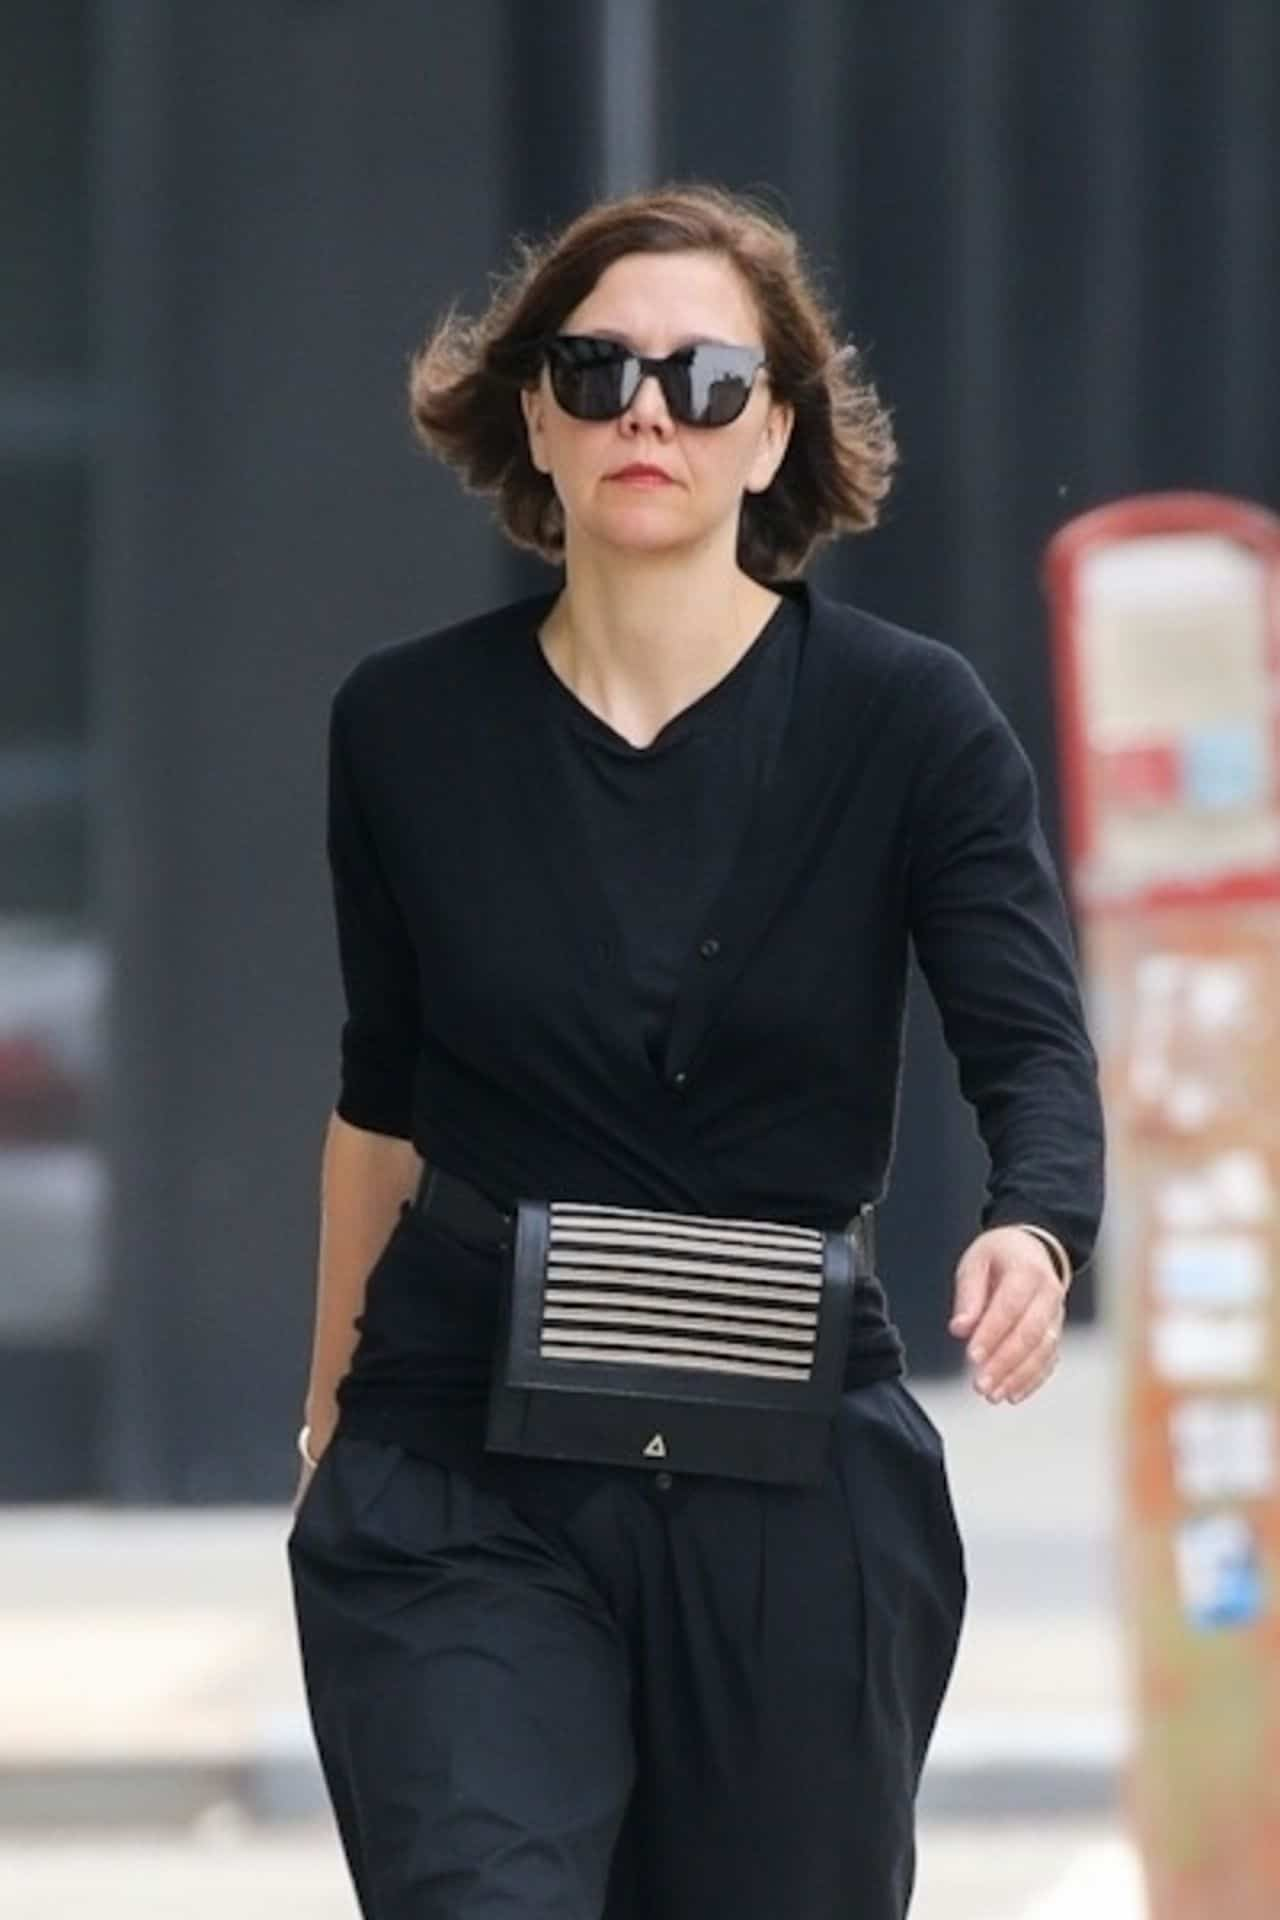 Maggie Gyllenhaal Out in All-black Outfit in New York